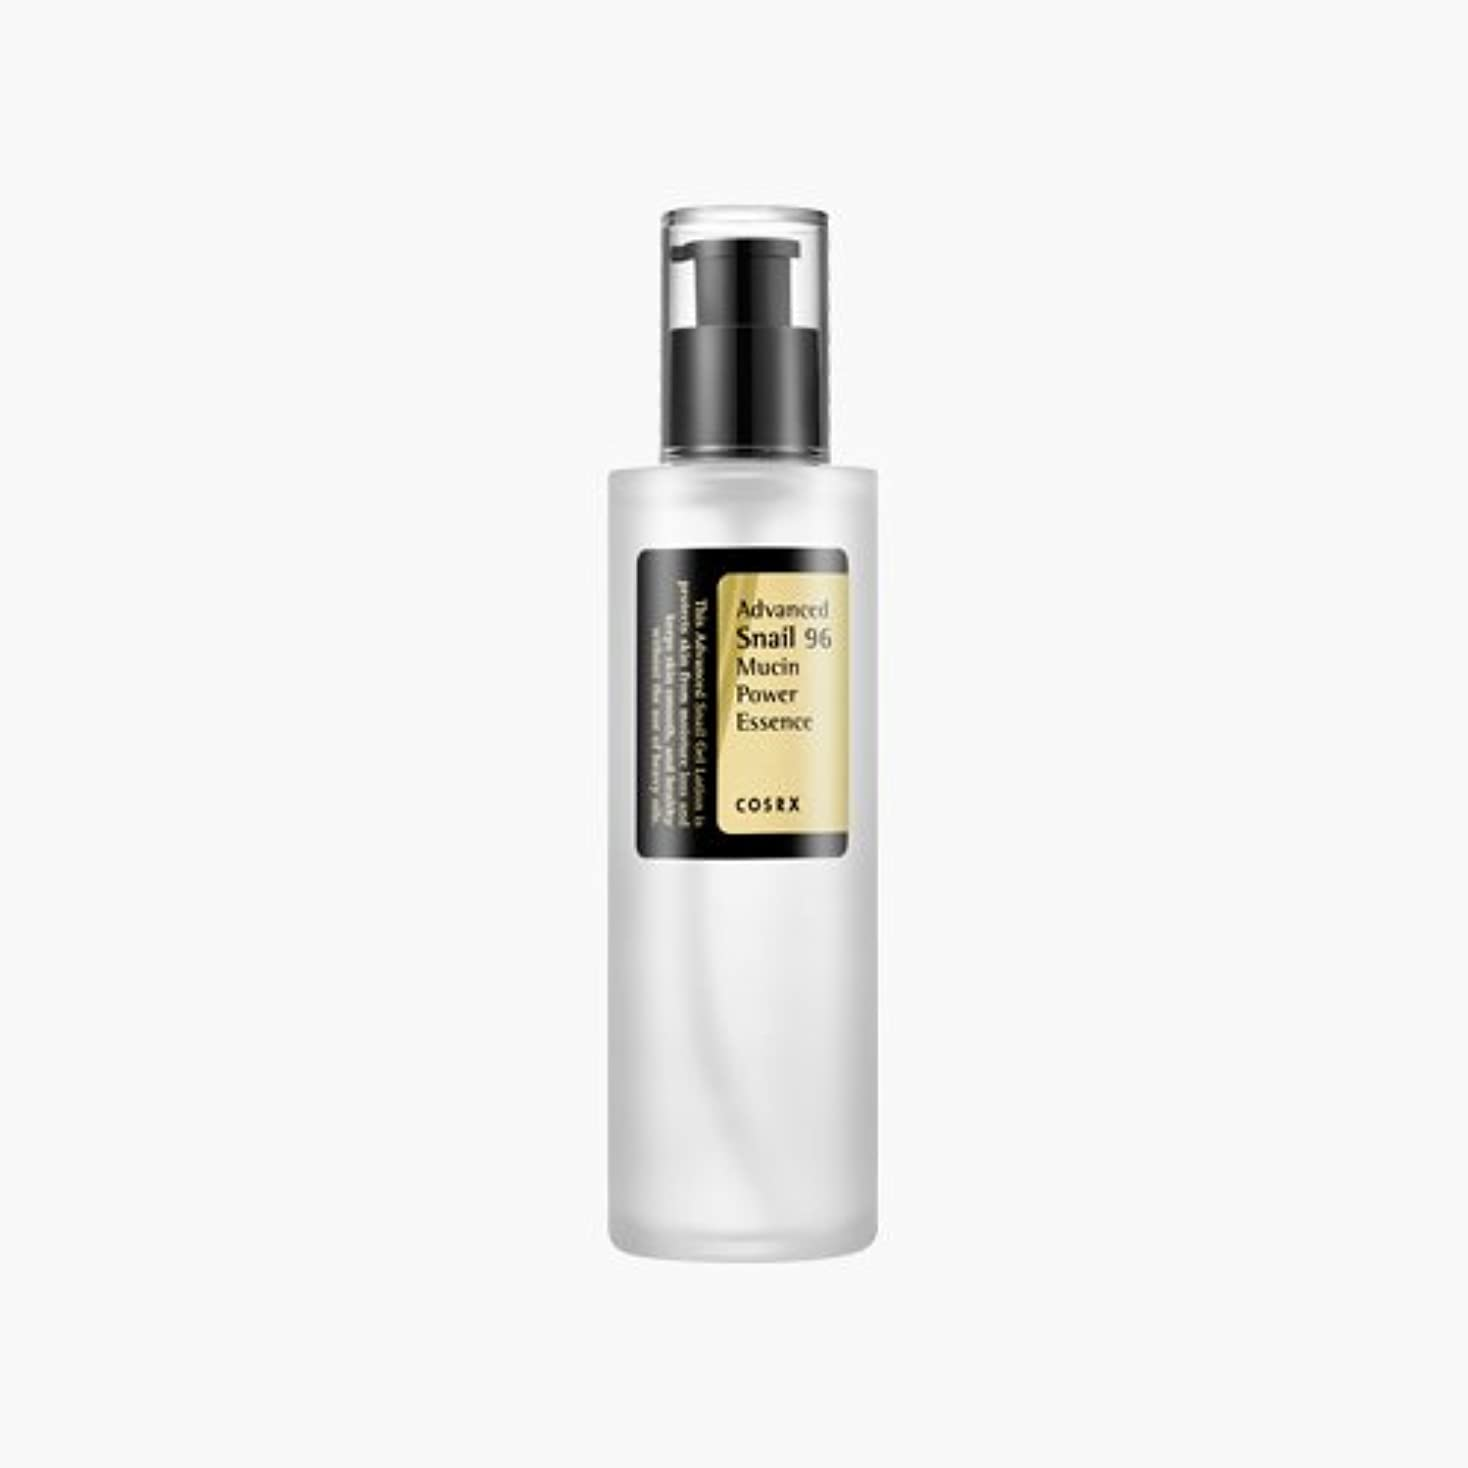 等しいアーネストシャクルトンその後[Cosrx] Advanced Snail 96 Mucin Power Essence 100ml/K-Beauty/Korea Cosmetics